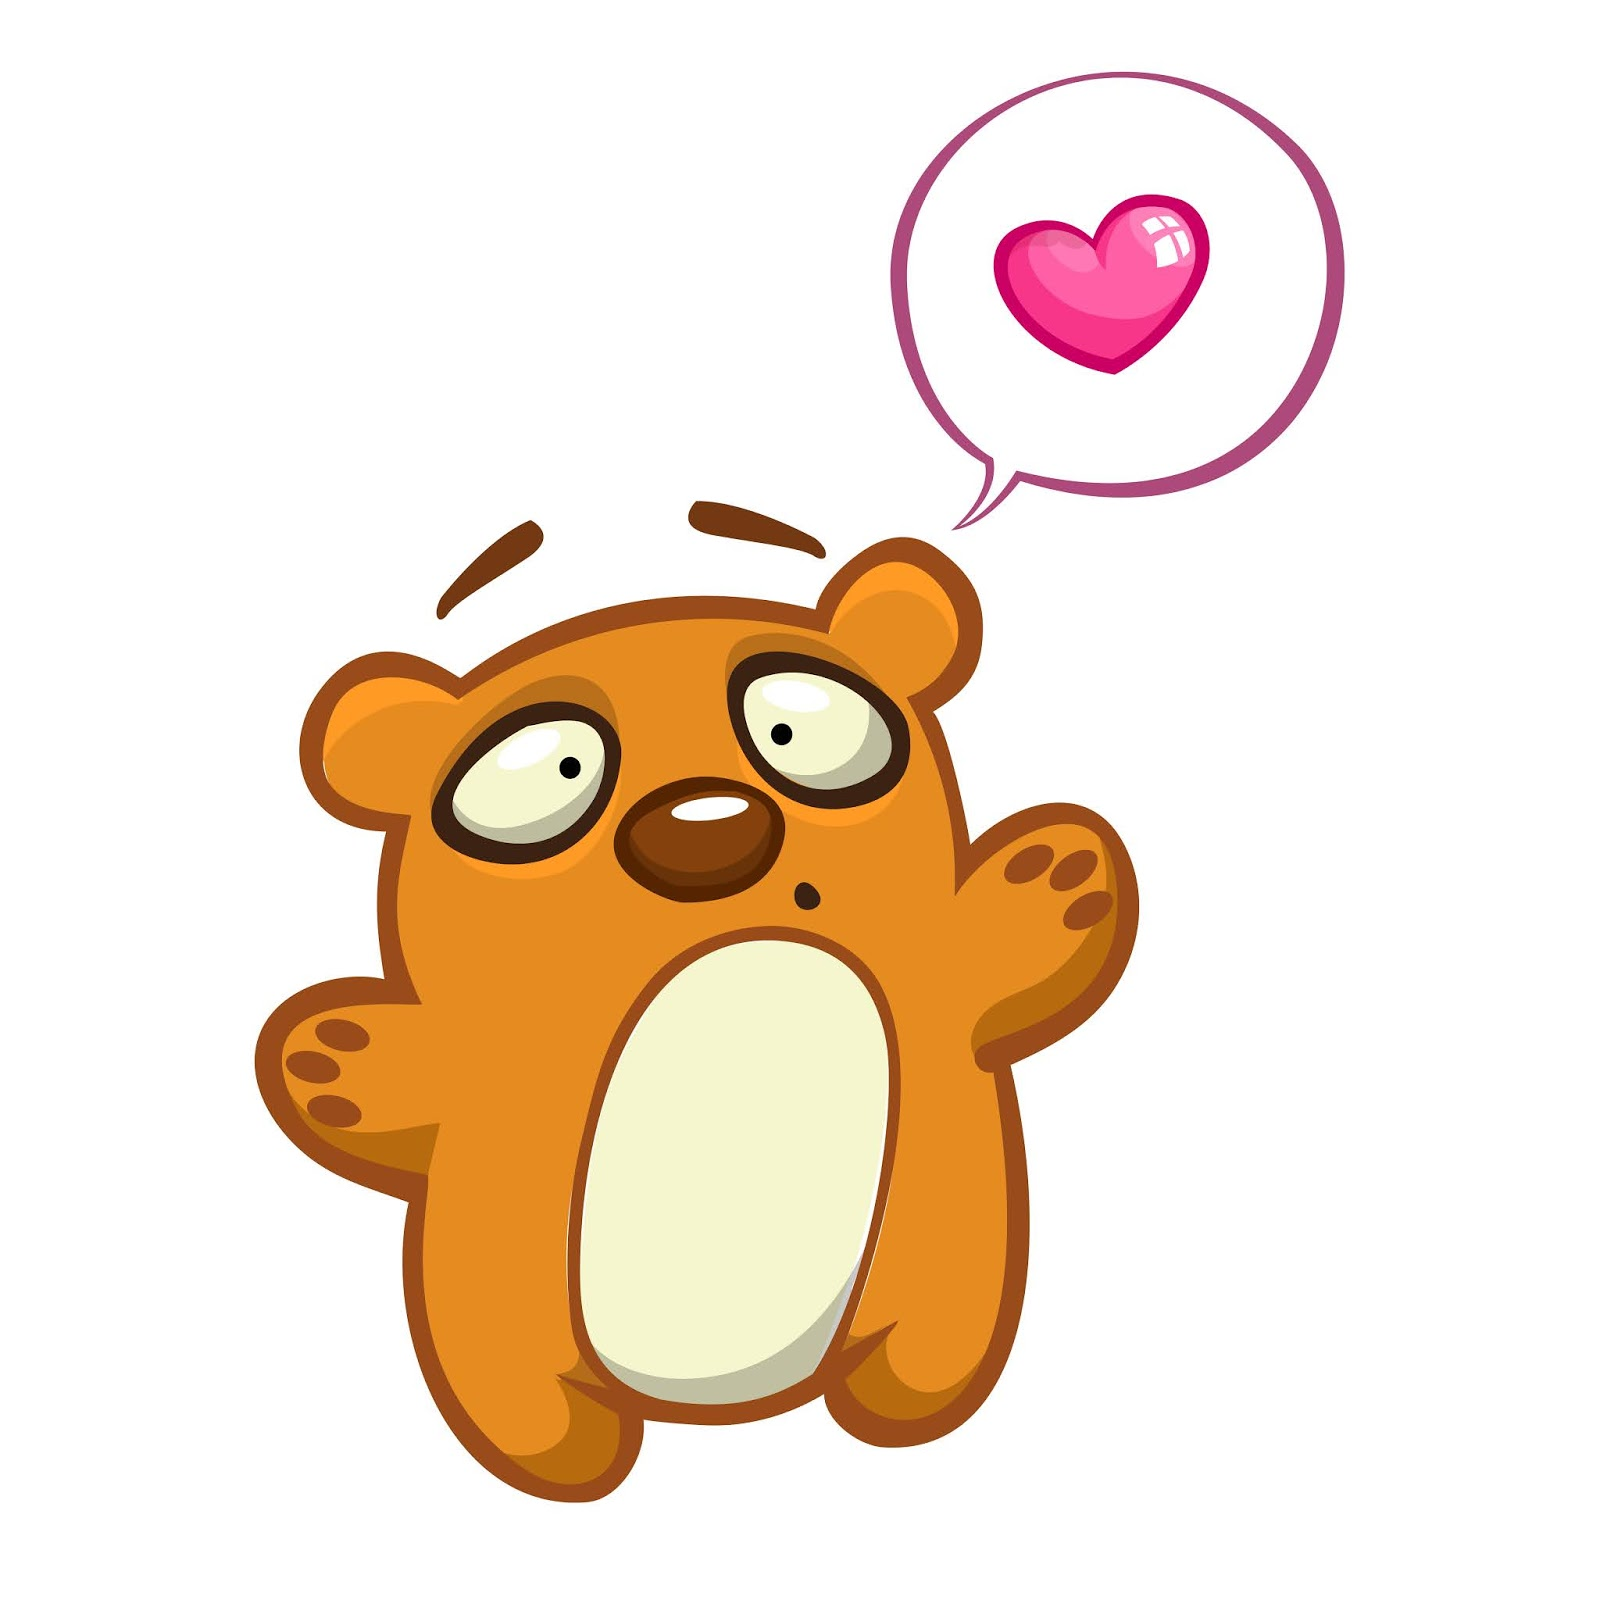 Cute Cartoon Bear Character Free Download Vector CDR, AI, EPS and PNG Formats